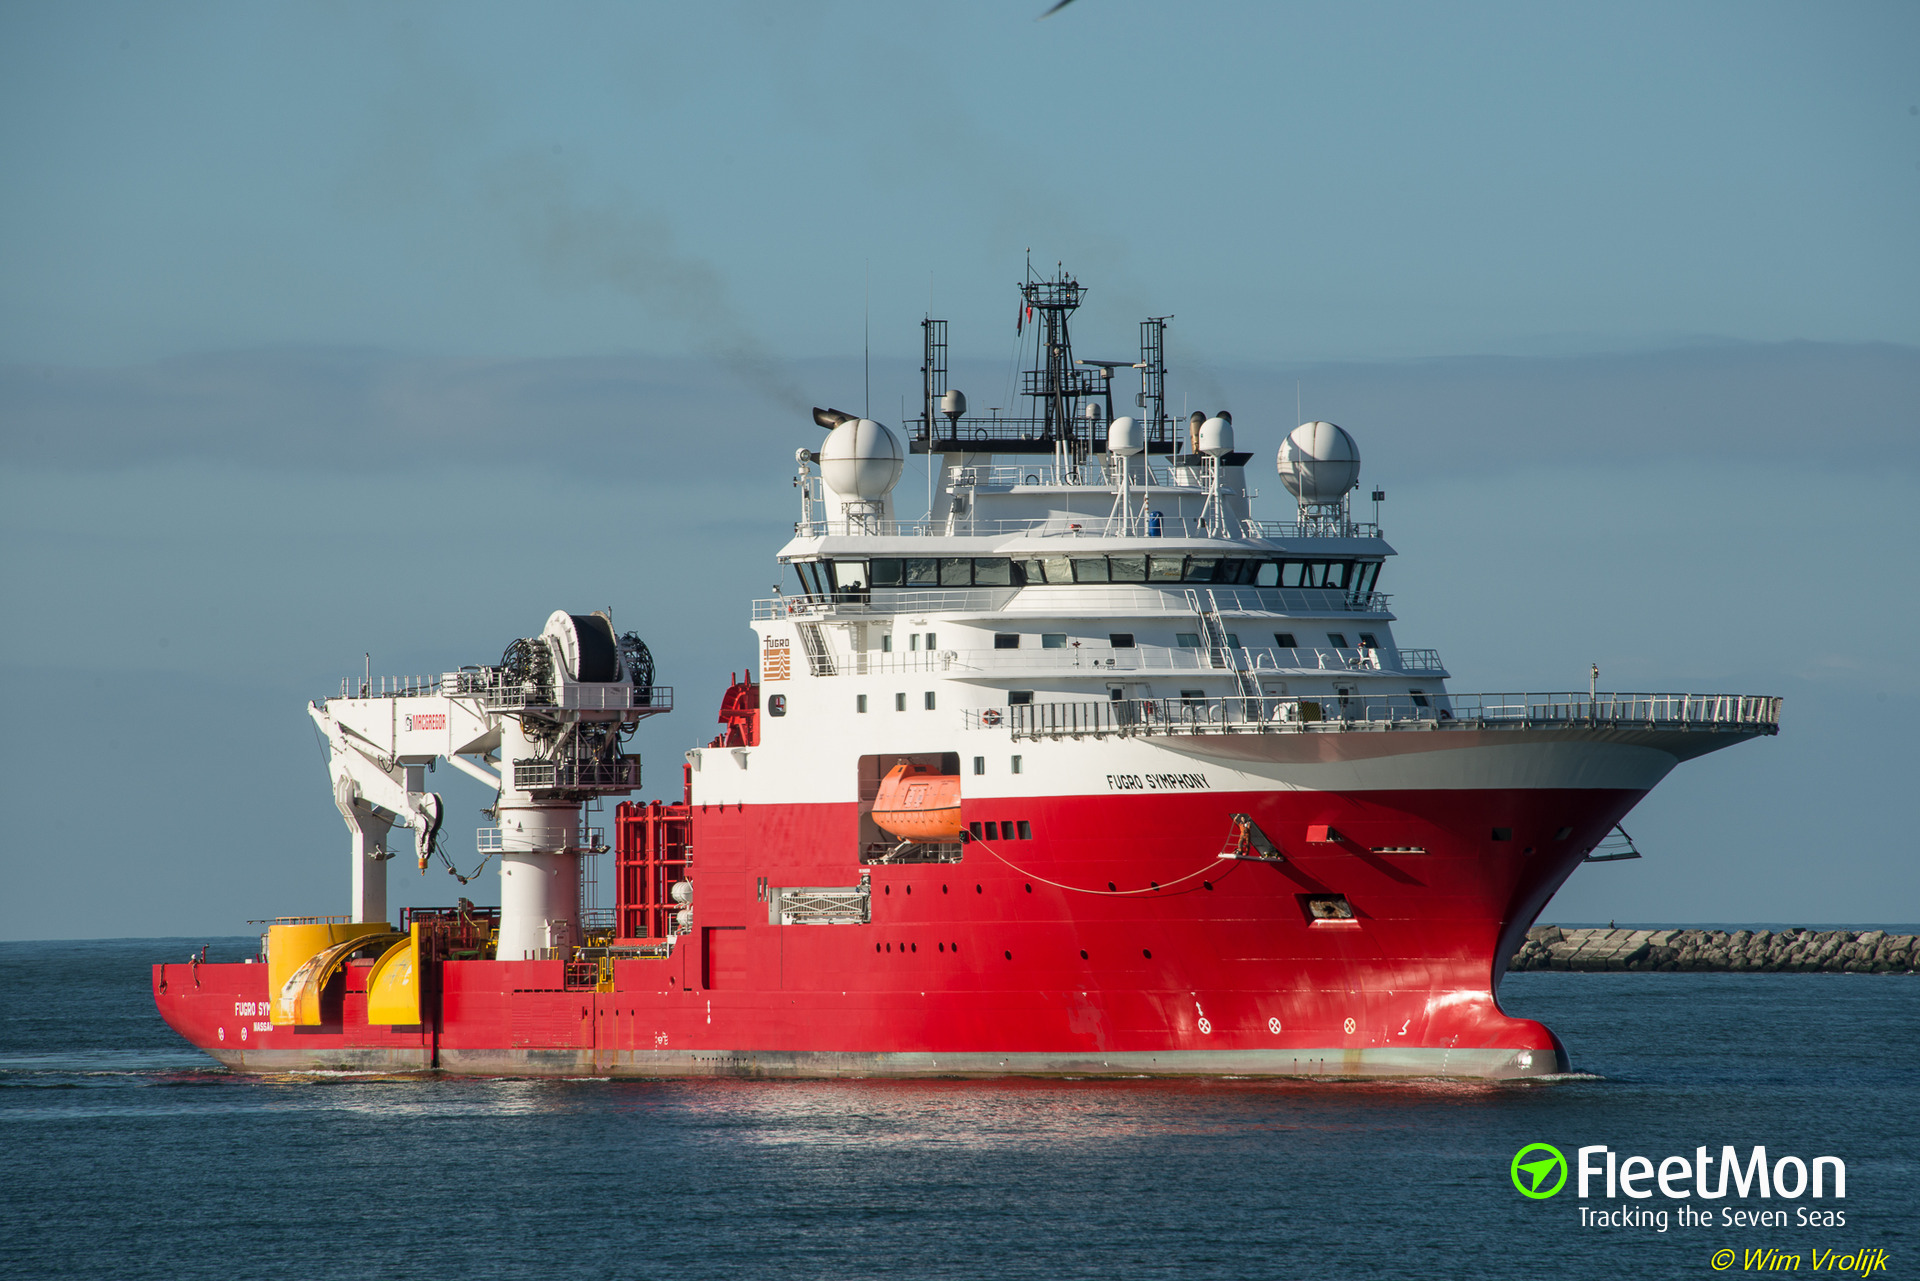 Fire on board of offshore supply vessel, Scotland